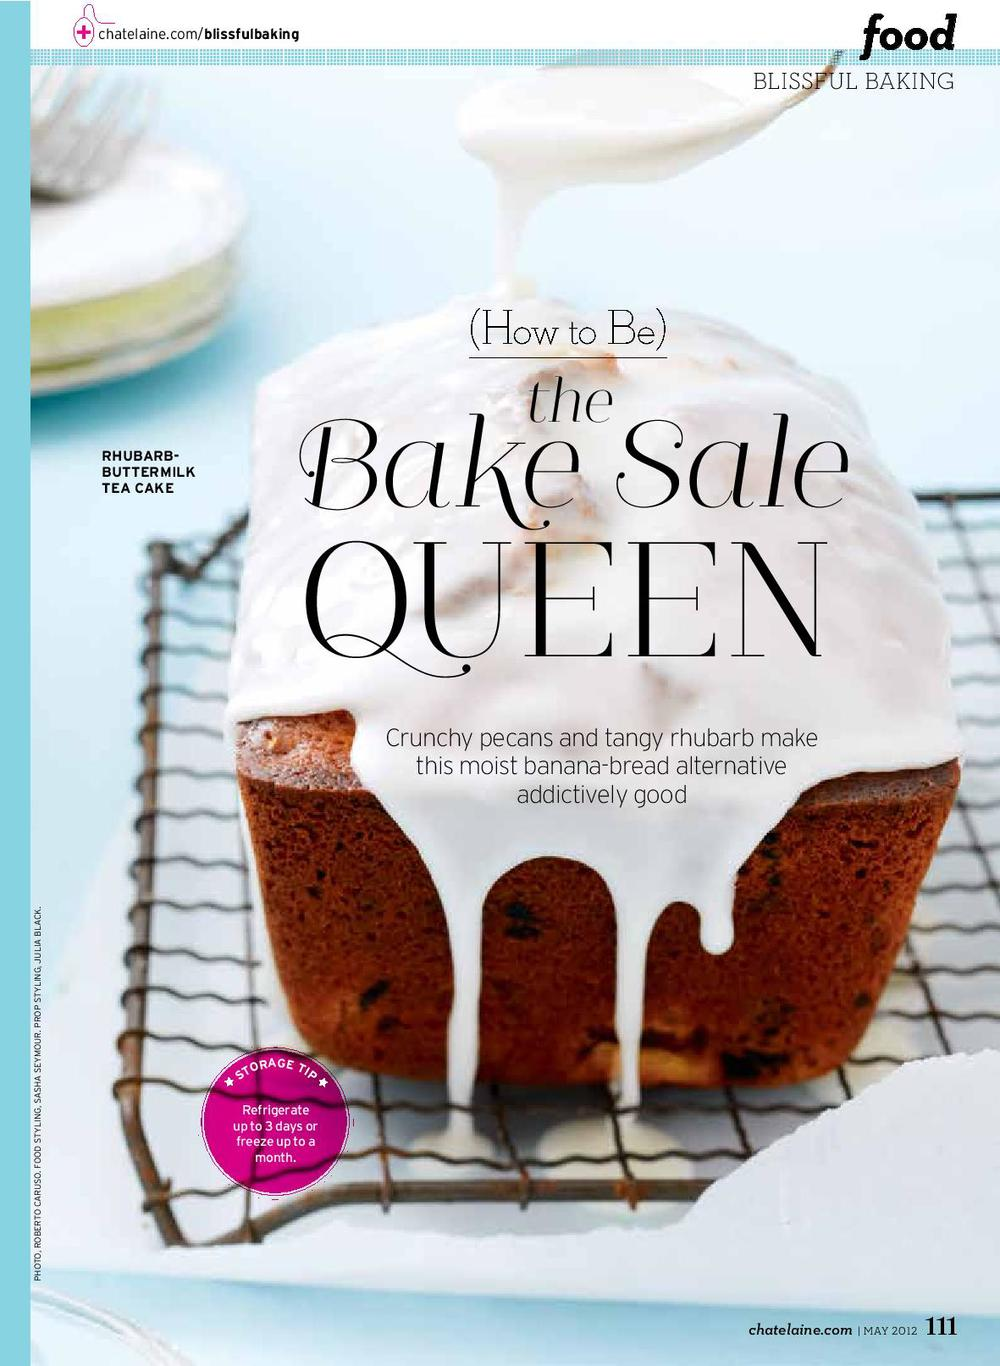 bake sale queen may 2012-page-001.jpg